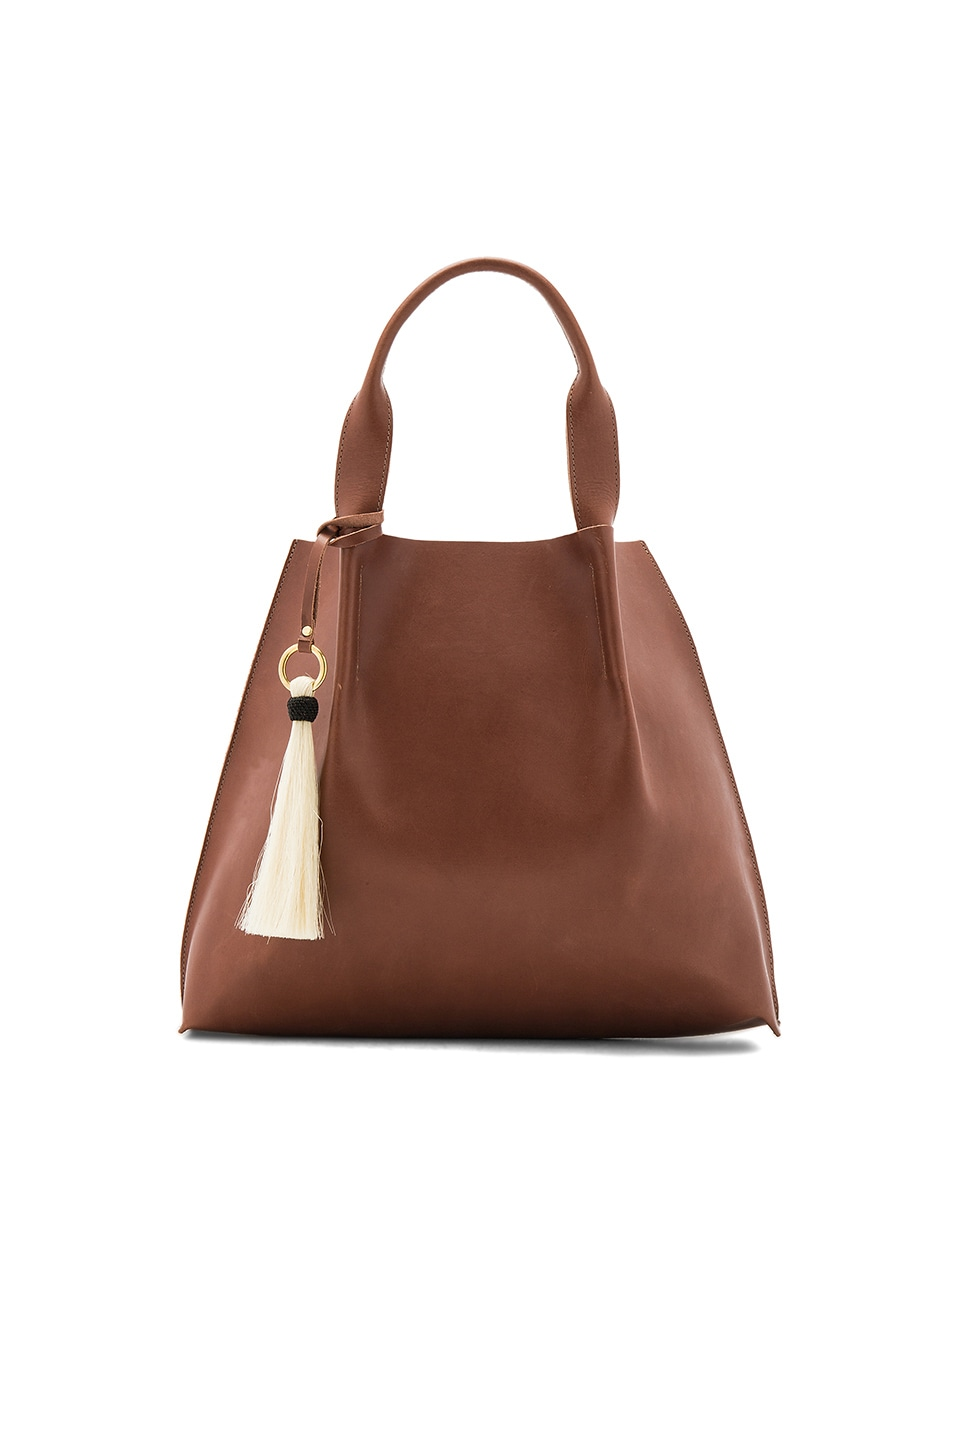 Oliveve Maggie Tote in Chestnut